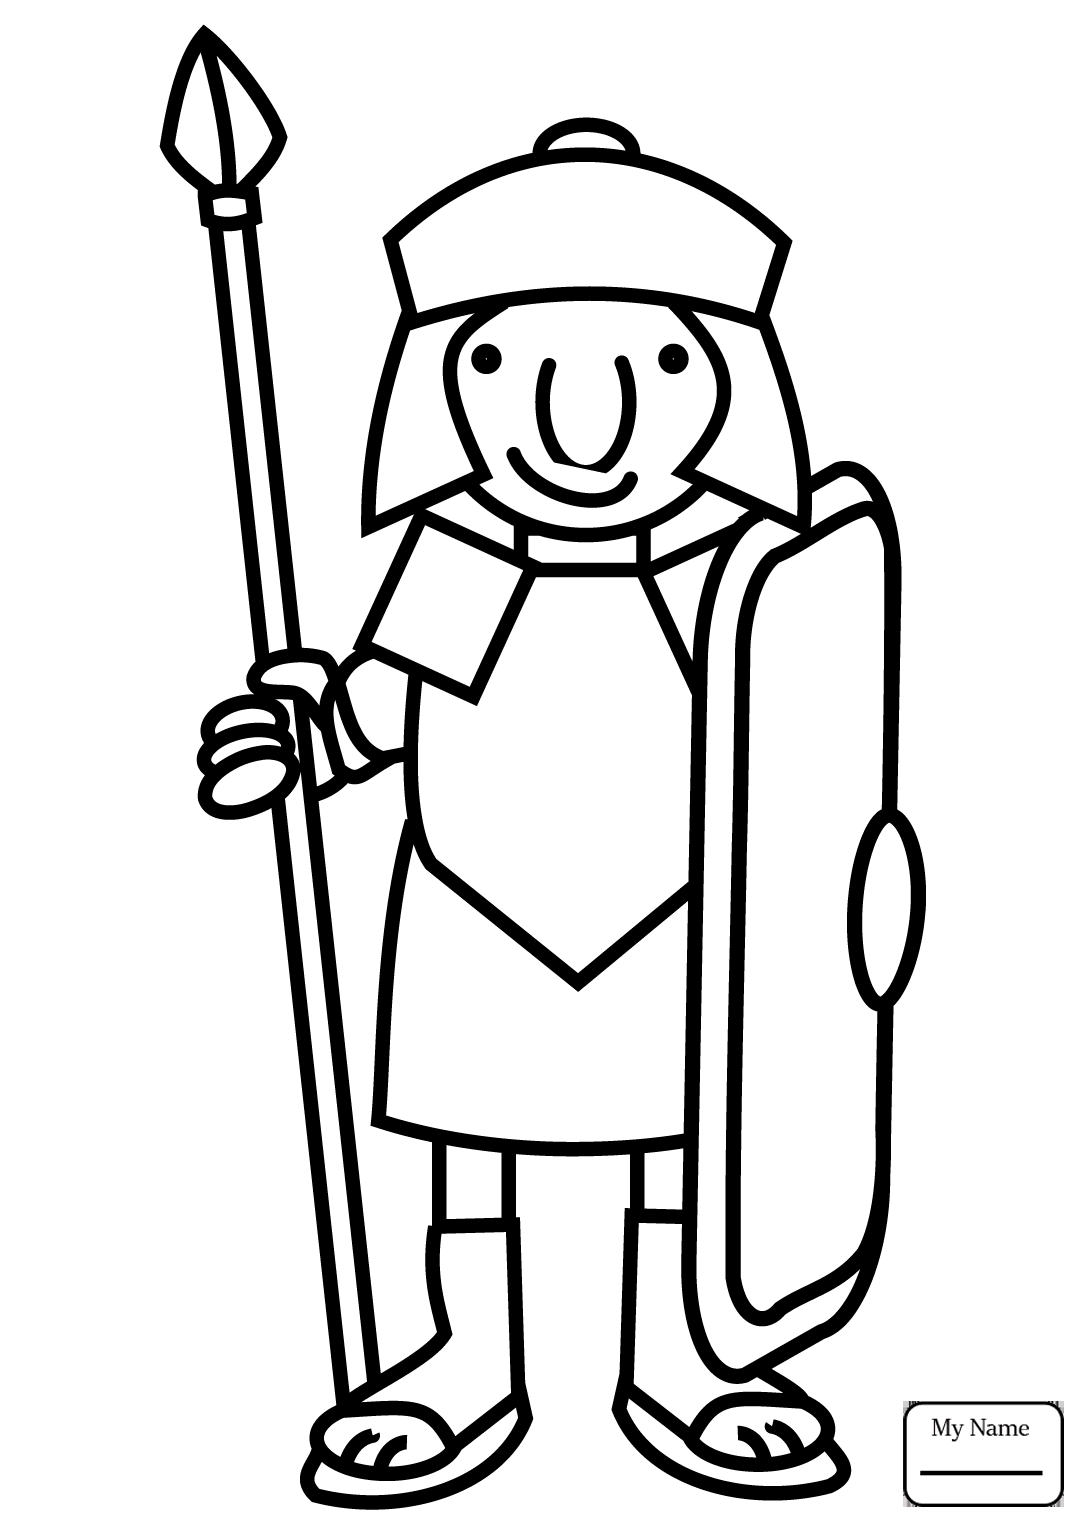 1082x1530 Coloring Pages For Kids History Cartoon Roman Soldier With Spear